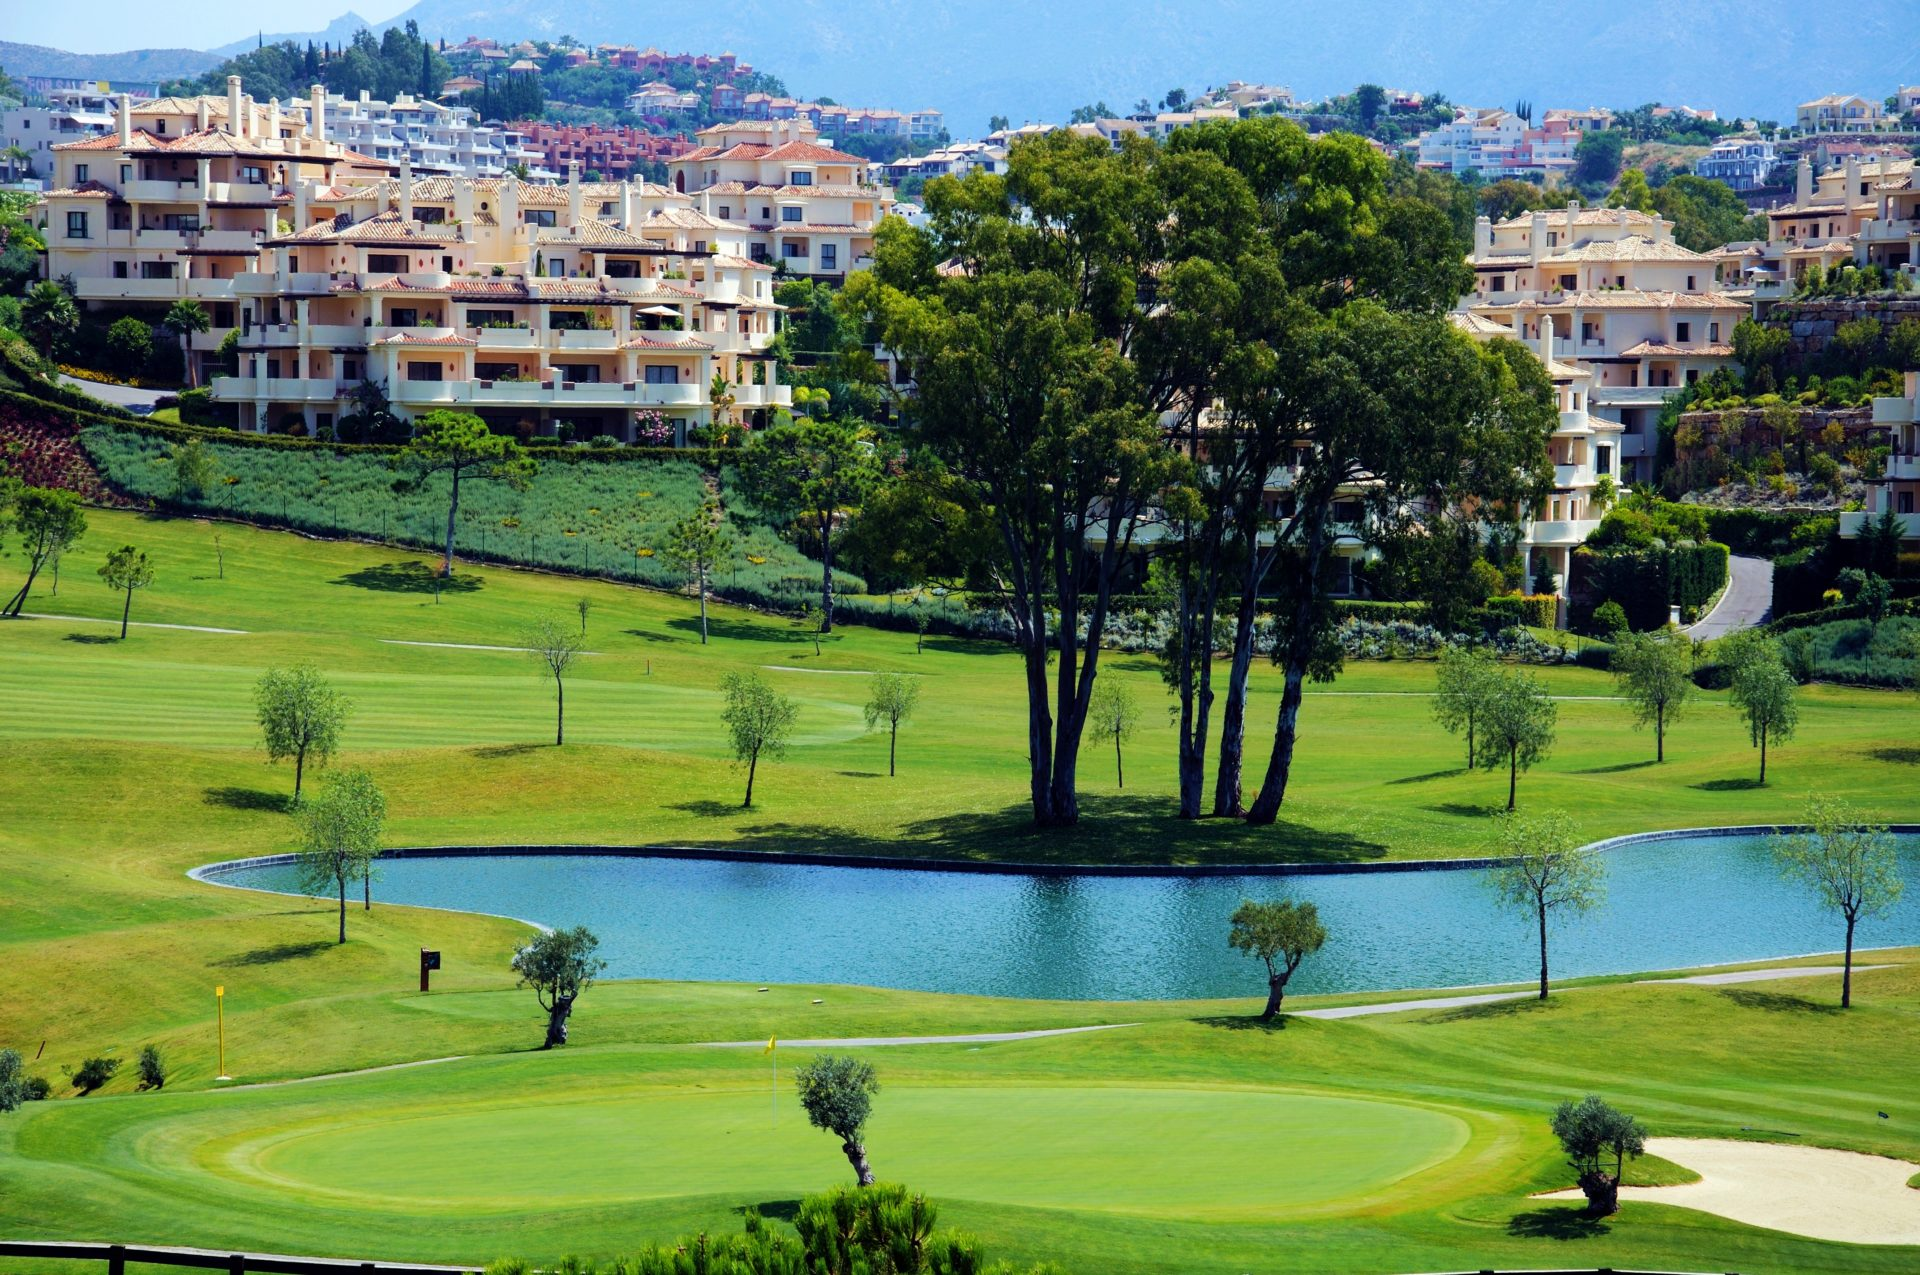 Benahavis View across the lake at El Higueral Golf Course with apartments to the rear, Benahavis (2)